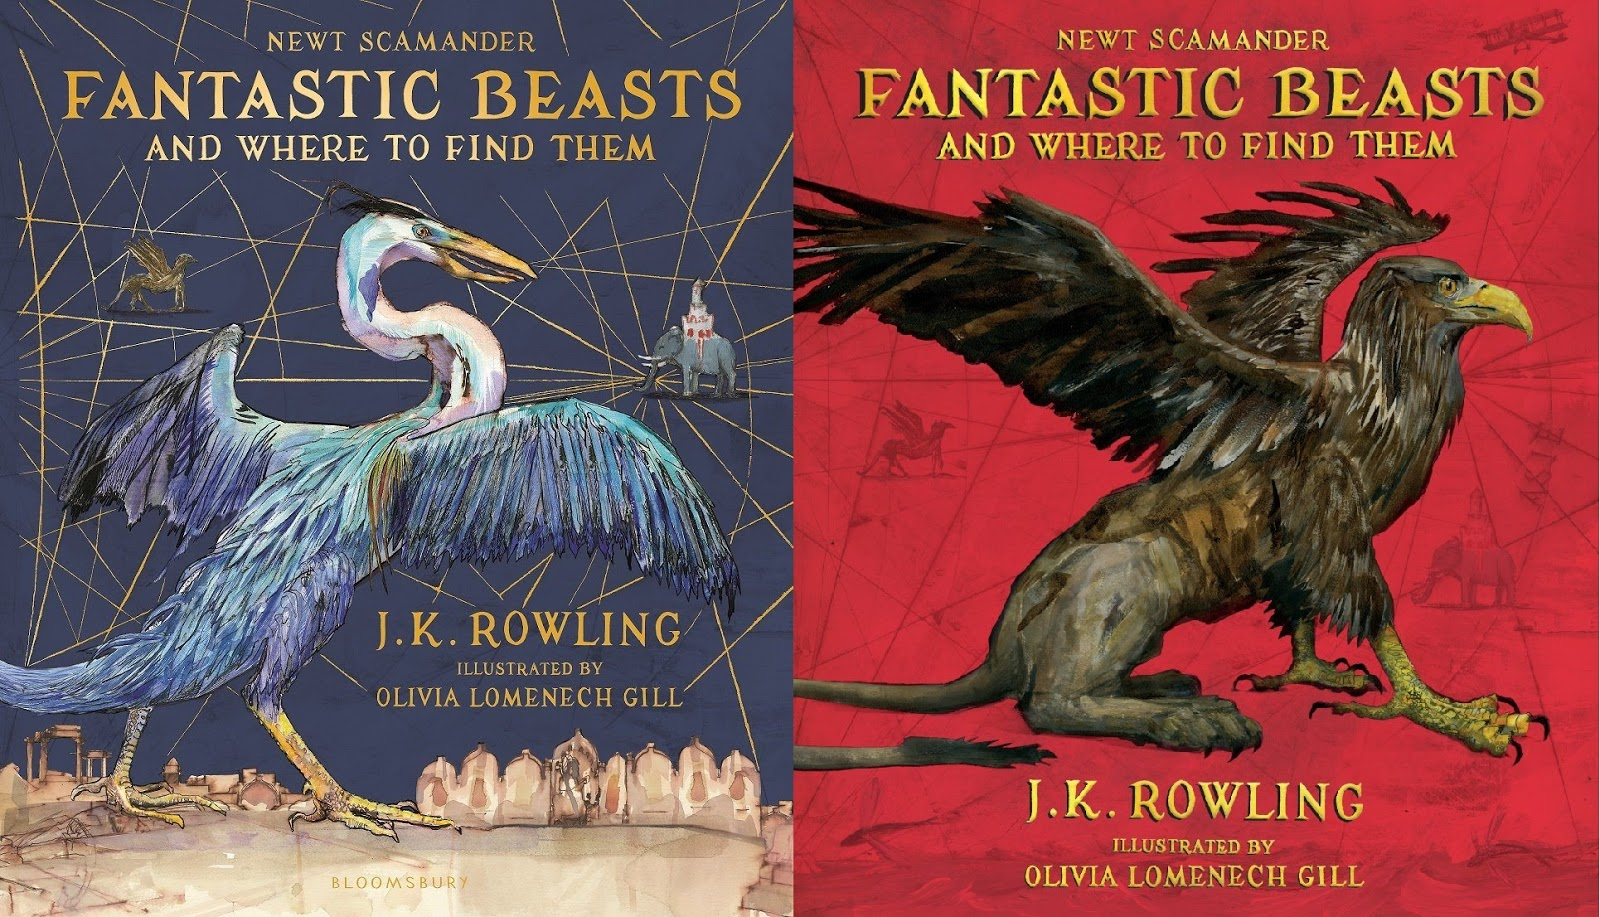 feminist criticism theory in the novel harry potter by j k rowling The study draws on all of the pre-existing theories, frameworks, underpinnings and themes that came out of the analysis that were set forth in the pilot study/first book that critically deconstructed the first harry potter book.